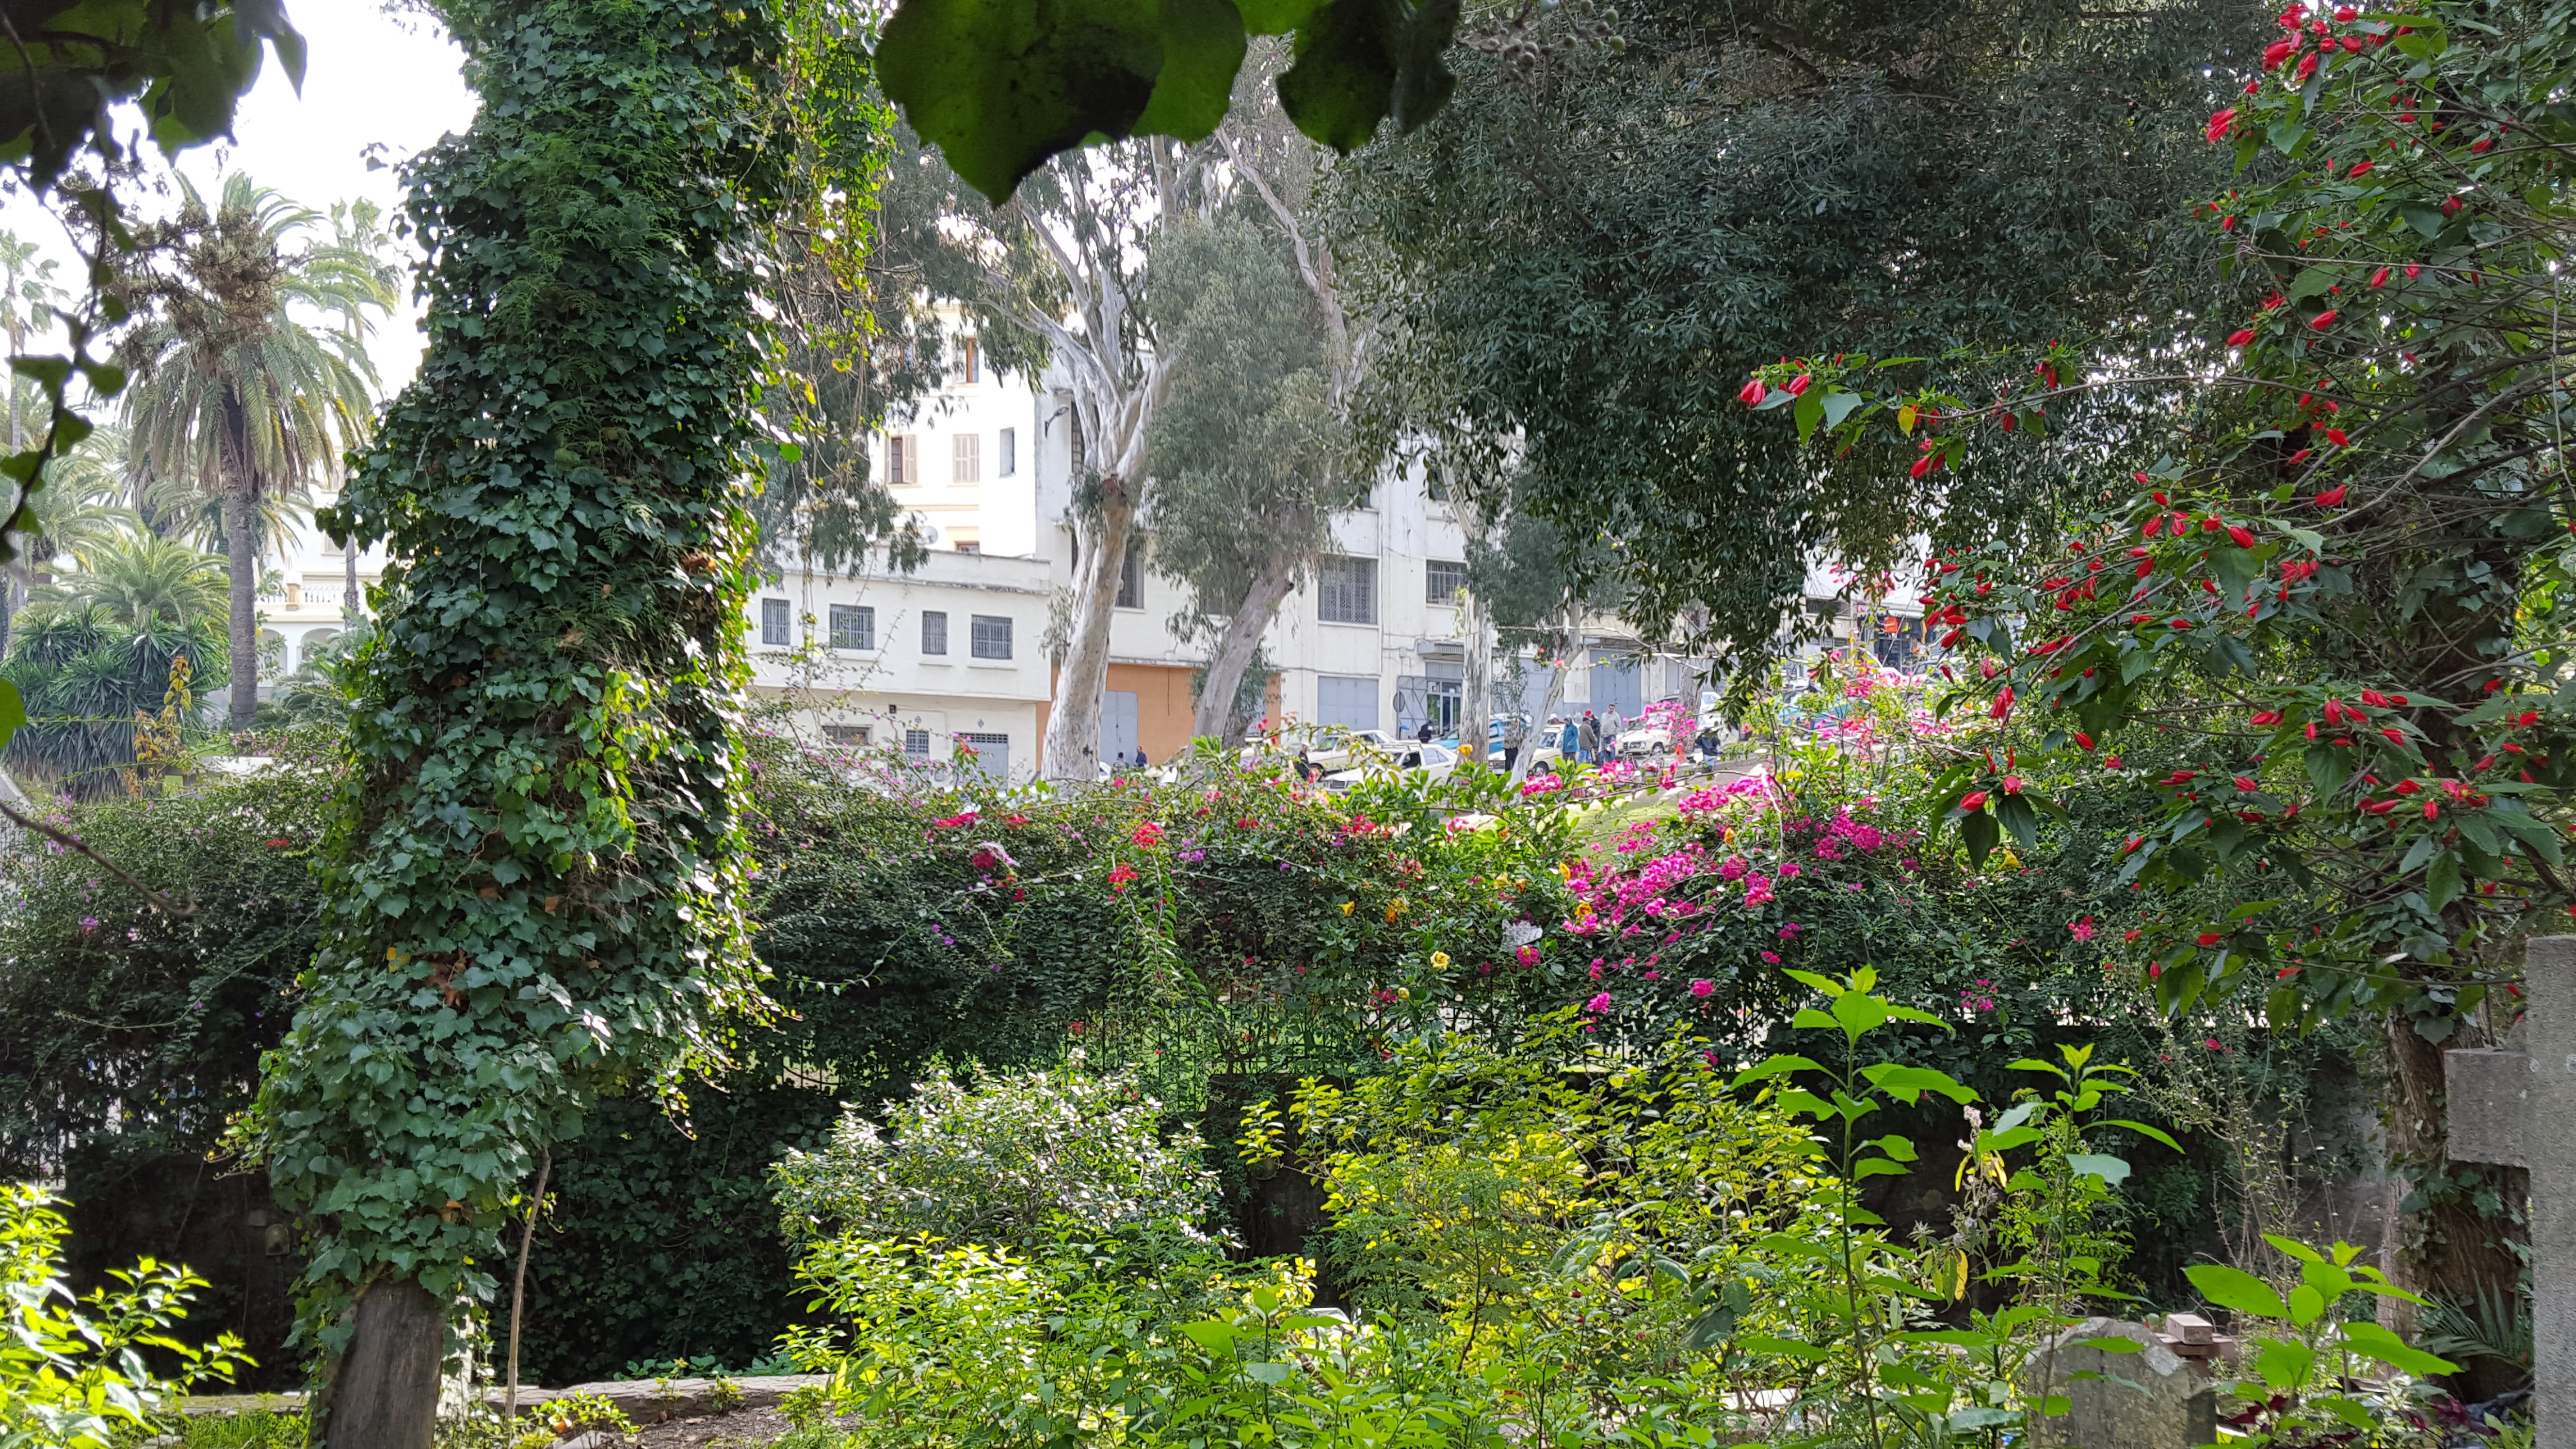 Free stock photo of churchyard, flowers, garden, morocco